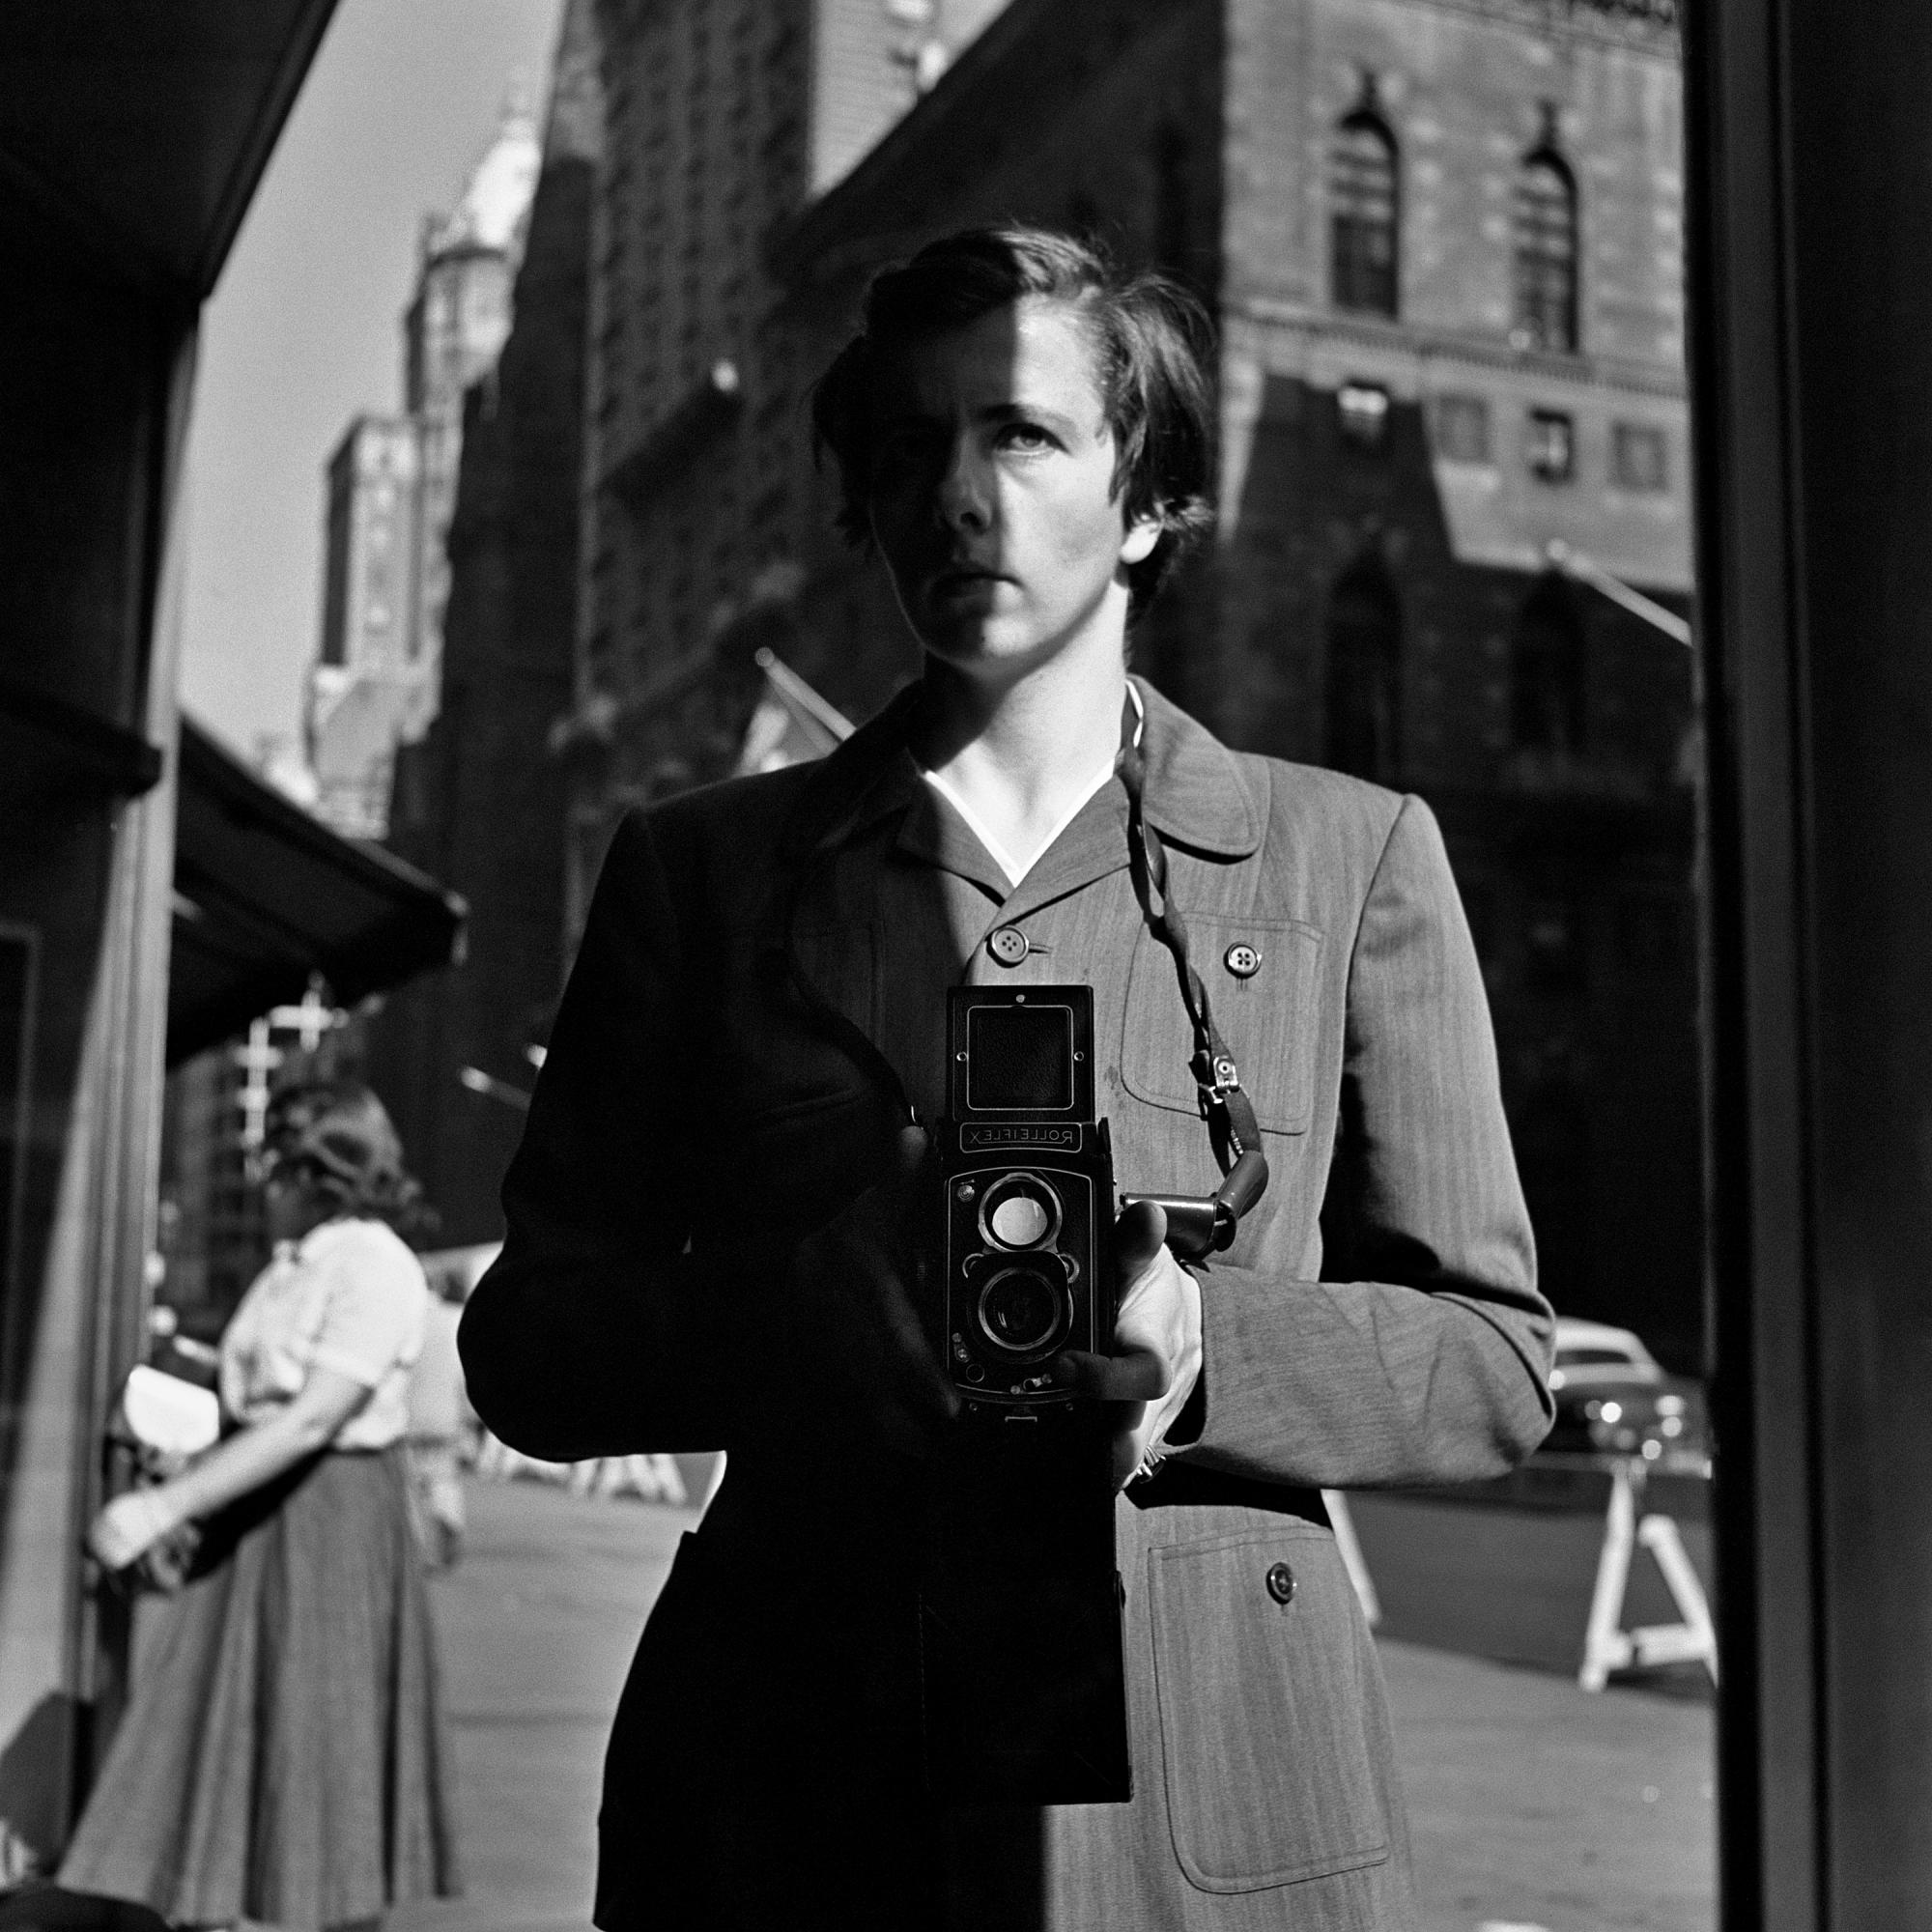 Vivian Maier: October 18, New York, 1953. © Estate of Vivian Maier, Courtesy of Maloof Collection and Howard Greenberg Gallery, NY.